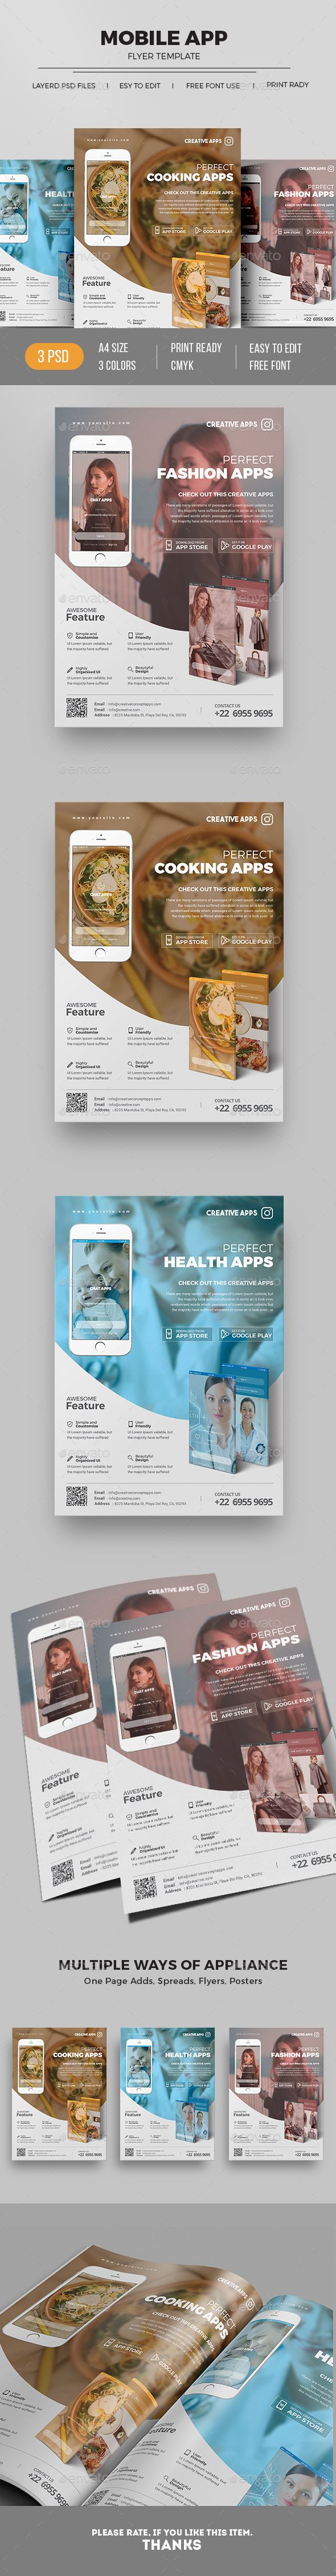 Mobile App Flyer — Photoshop PSD #mobile application flyer #business • Download ➝ https://graphicriver.net/item/mobile-app-flyer/19534728?ref=pxcr